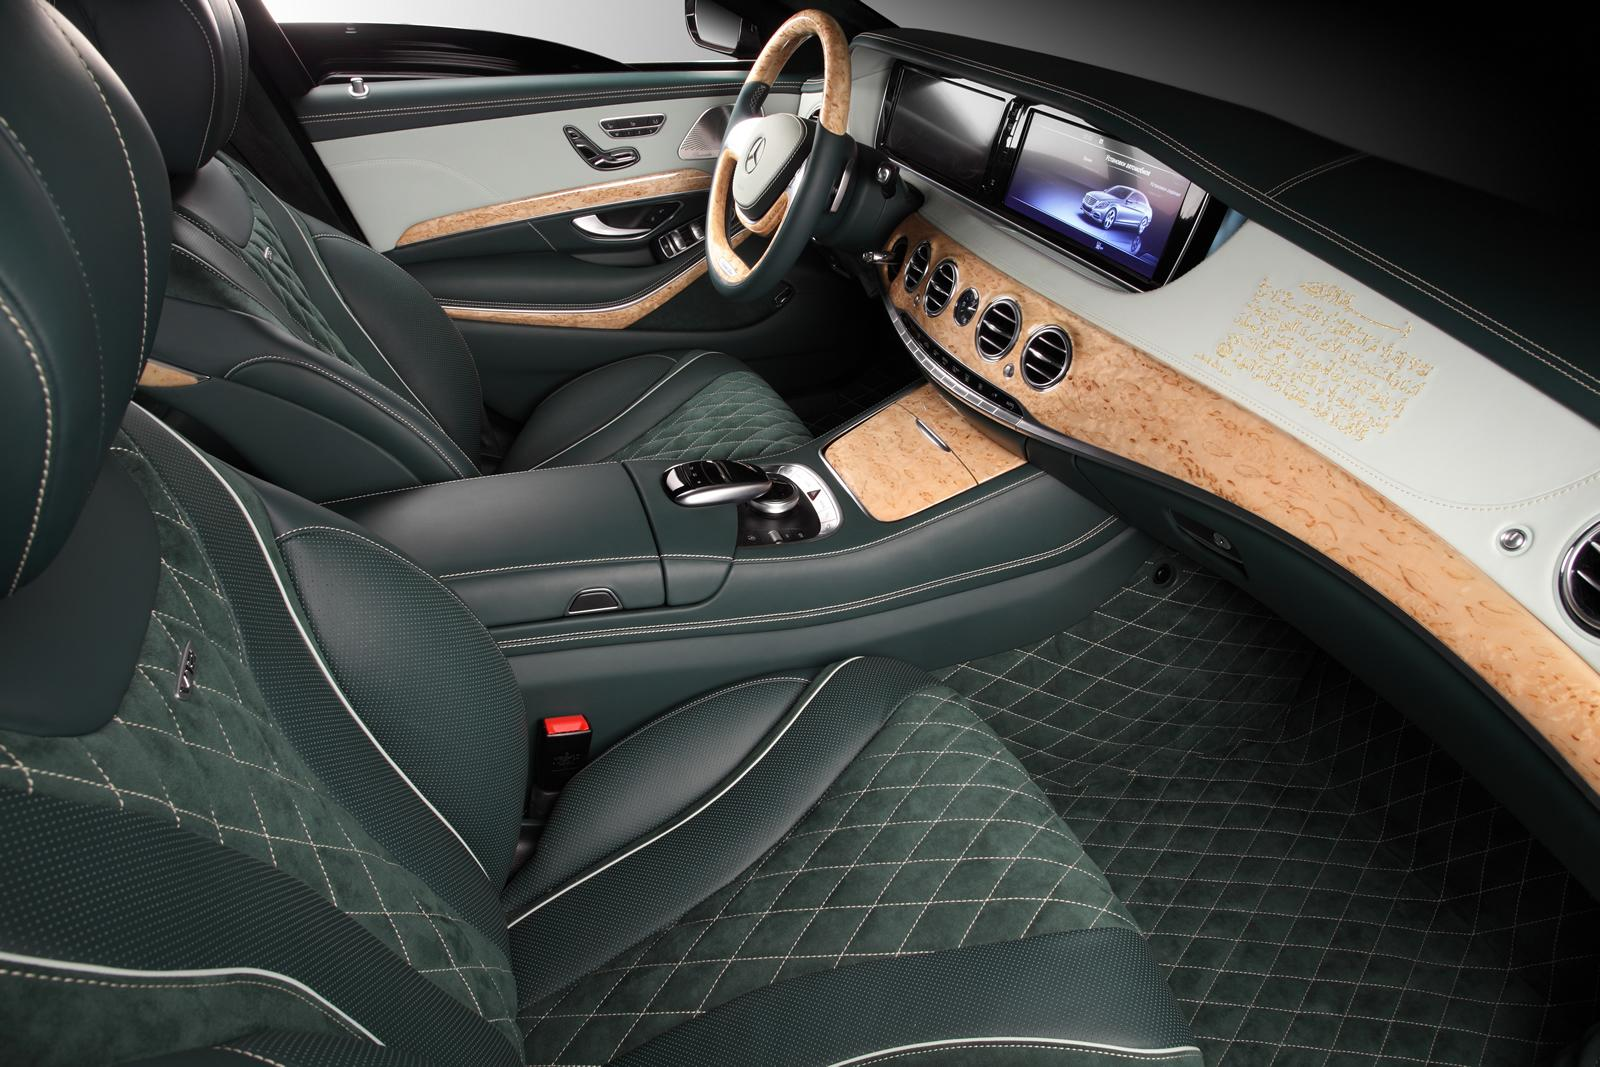 Mercedes Benz S600 Guard Interior Becomes Arab Story Via